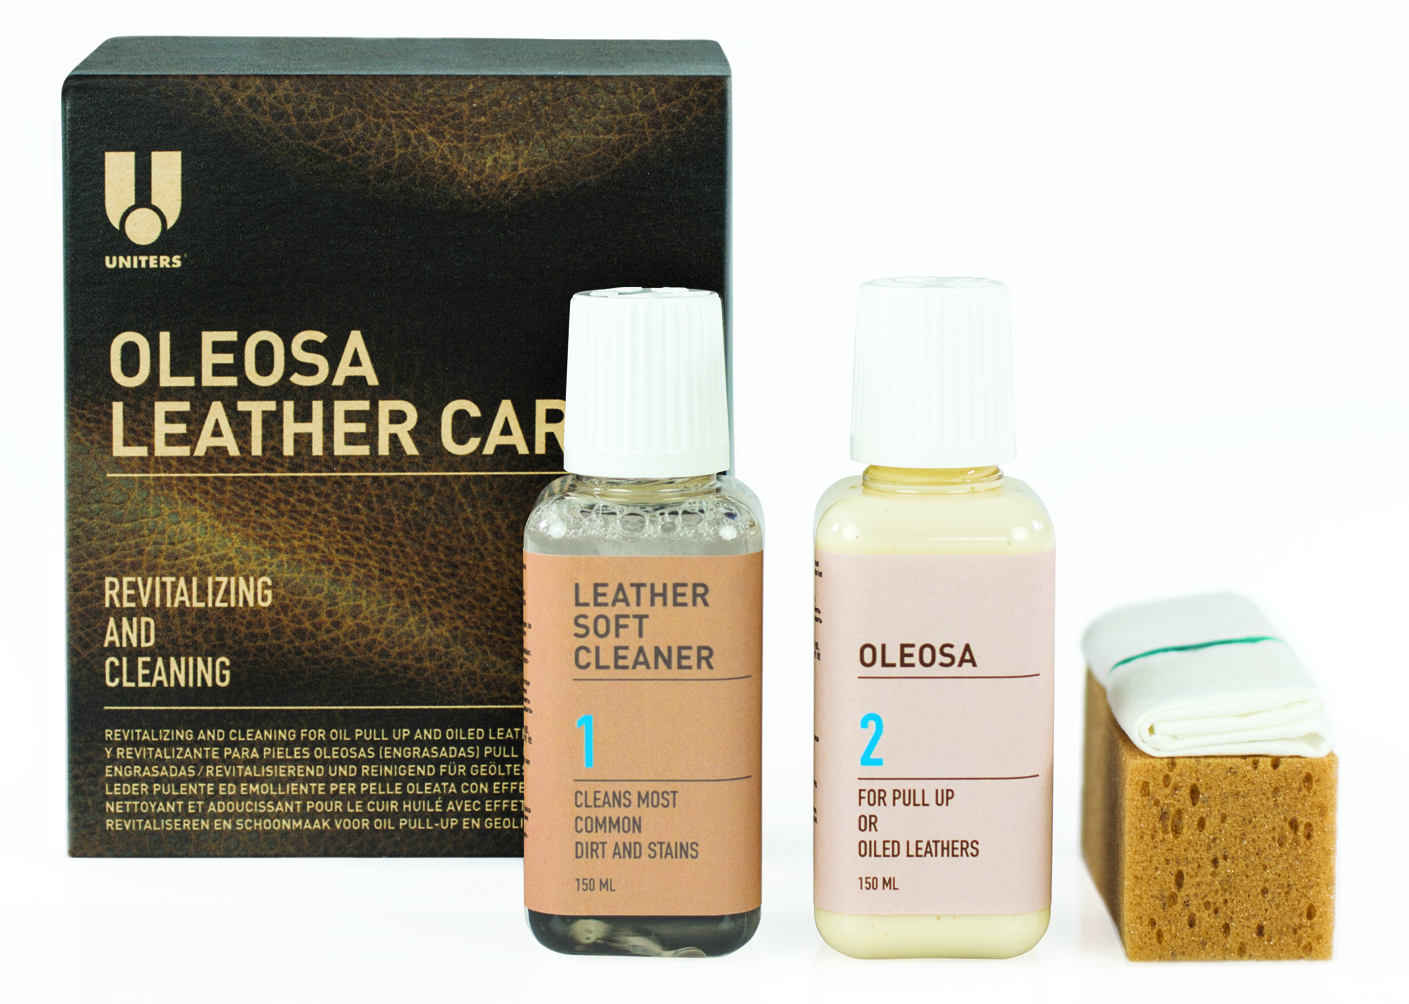 OLEOSA LEATHER CARE KIT